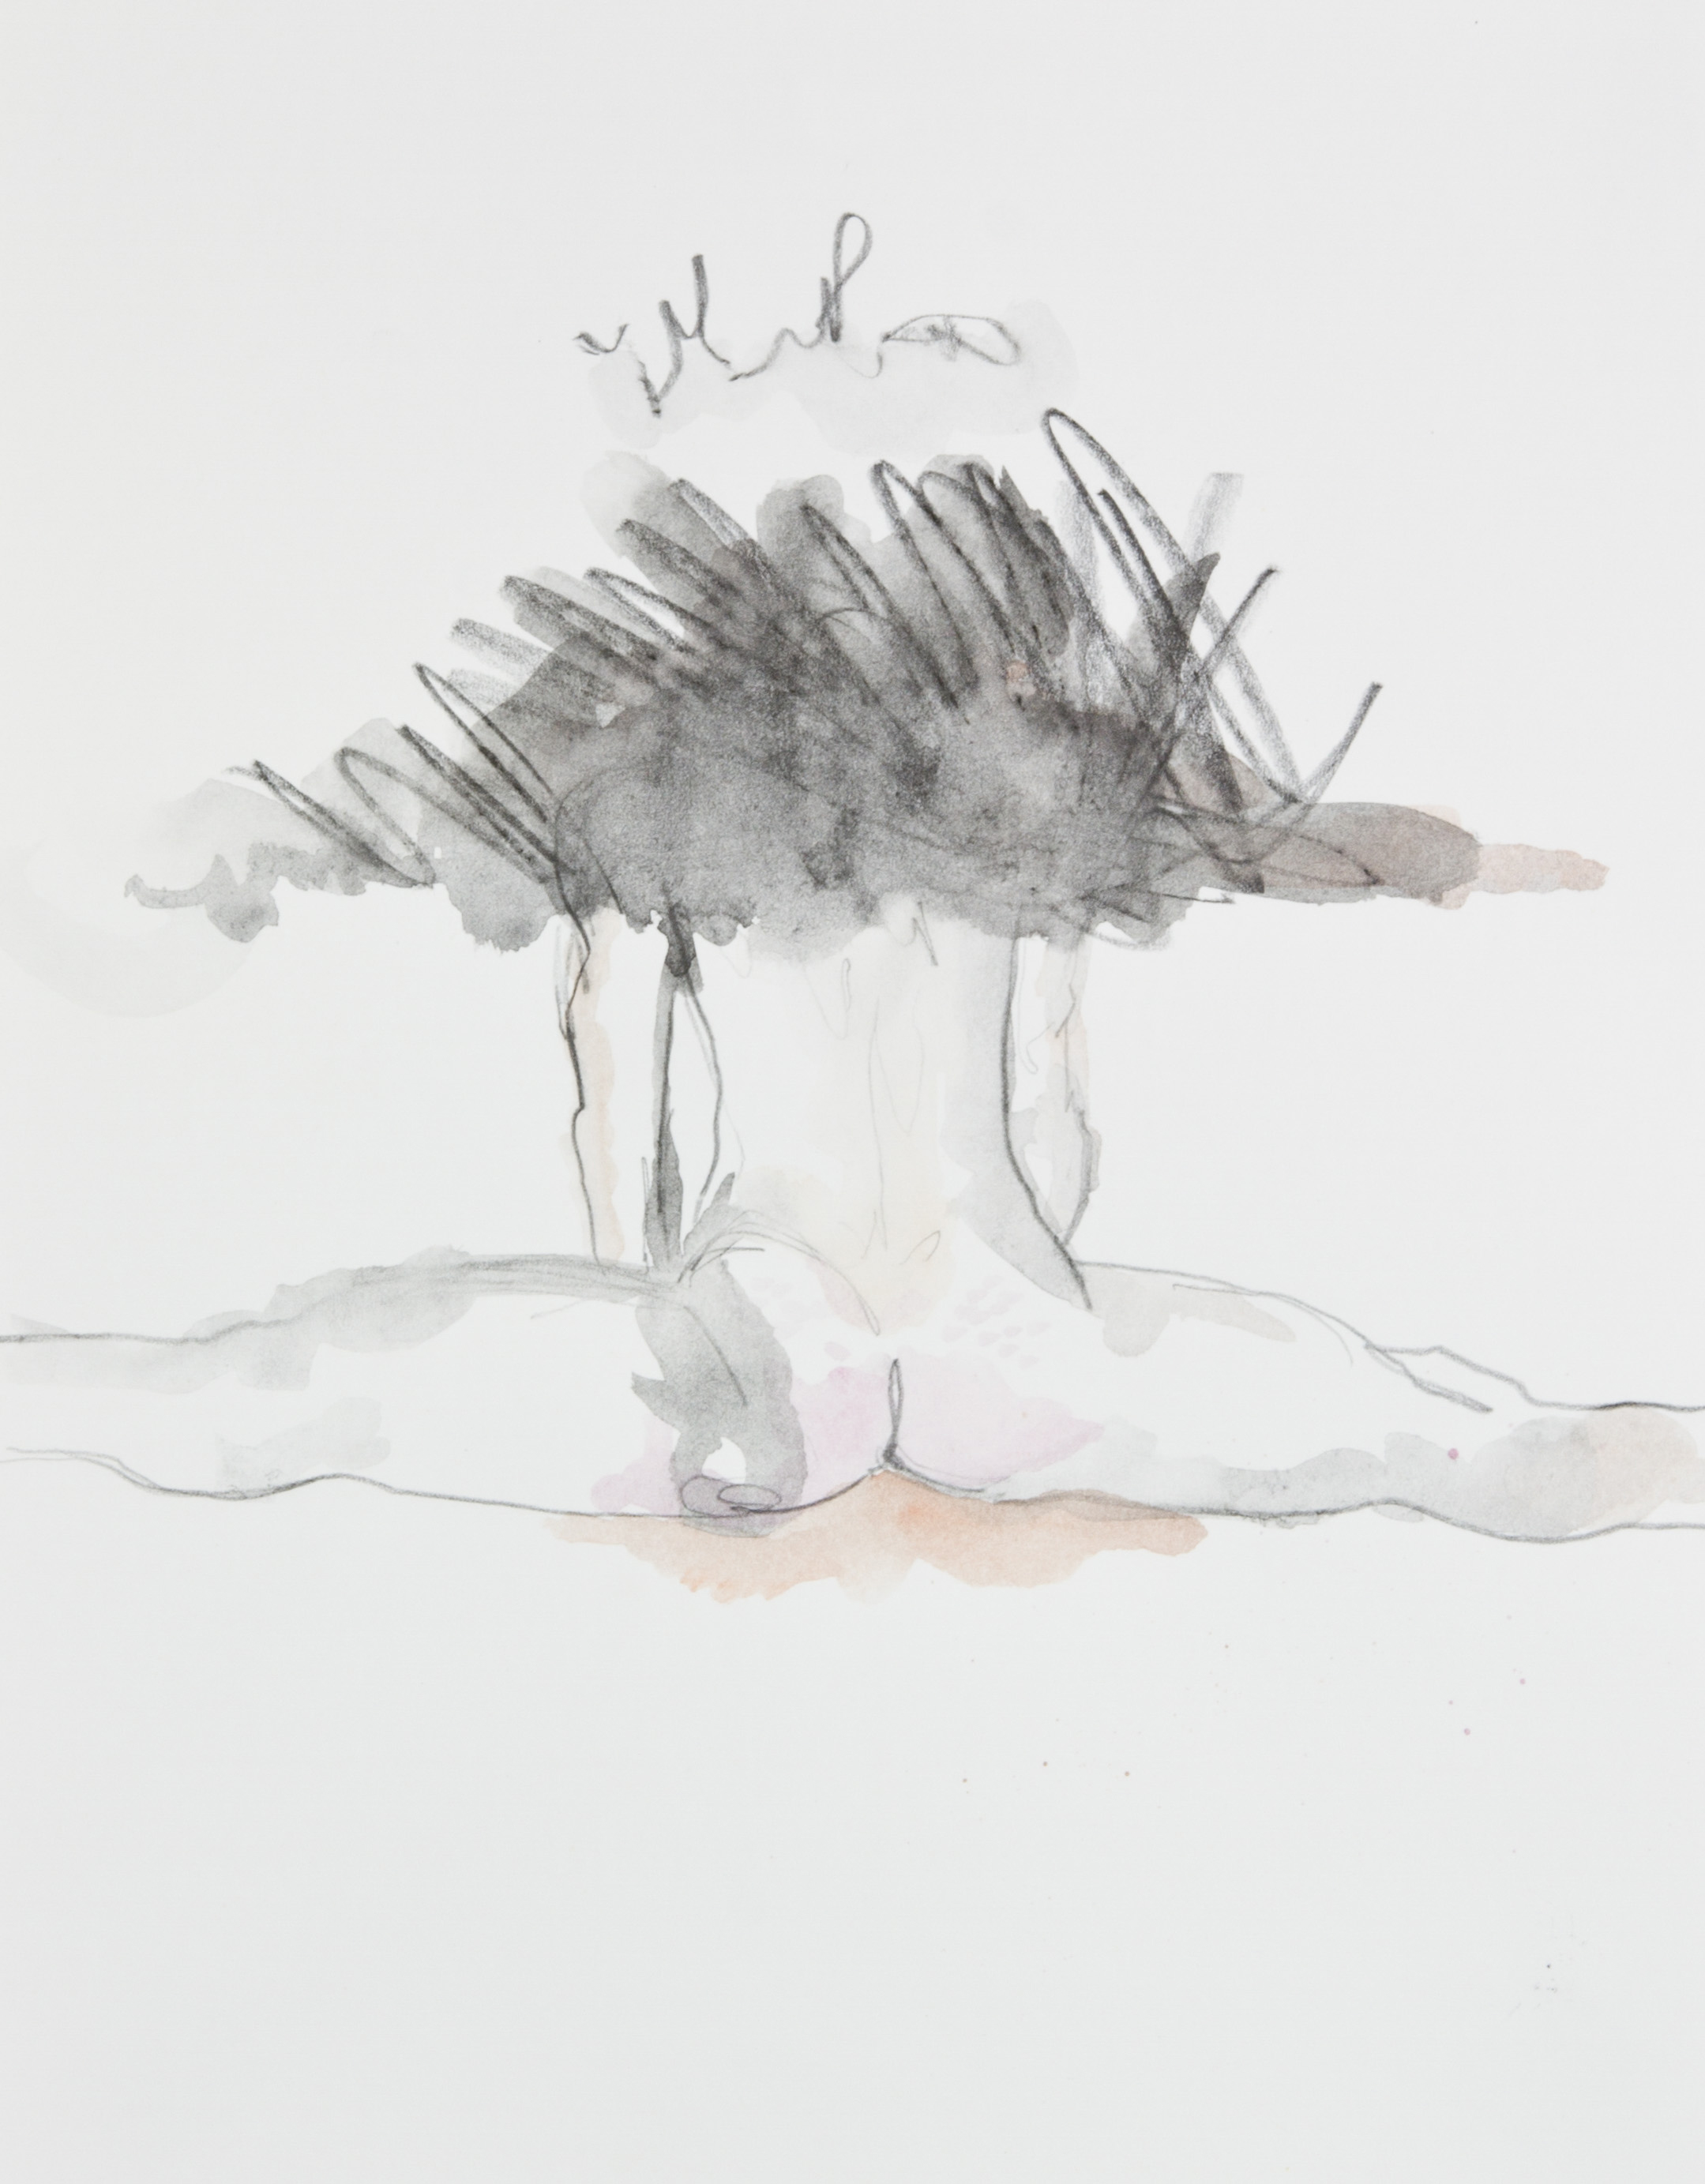 As Above So Below 2013, graphite and watercolor pencil on paper, 11x14 inches